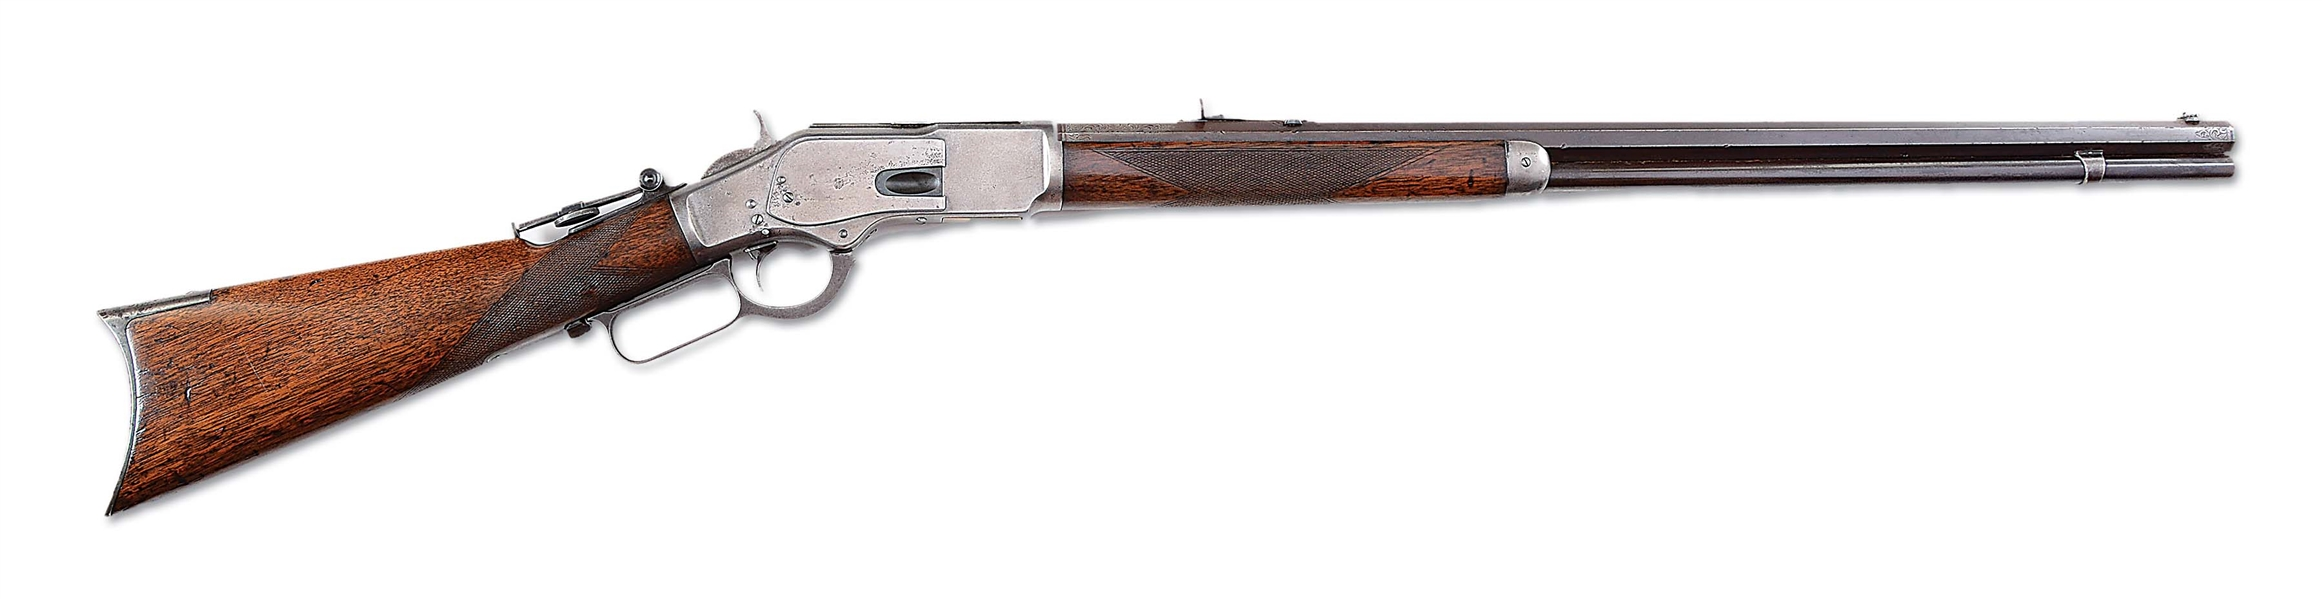 "(A) WINCHESTER MODEL 1873 ENGRAVED ""ONE OF ONE THOUSAND"" LEVER ACTION RIFLE"